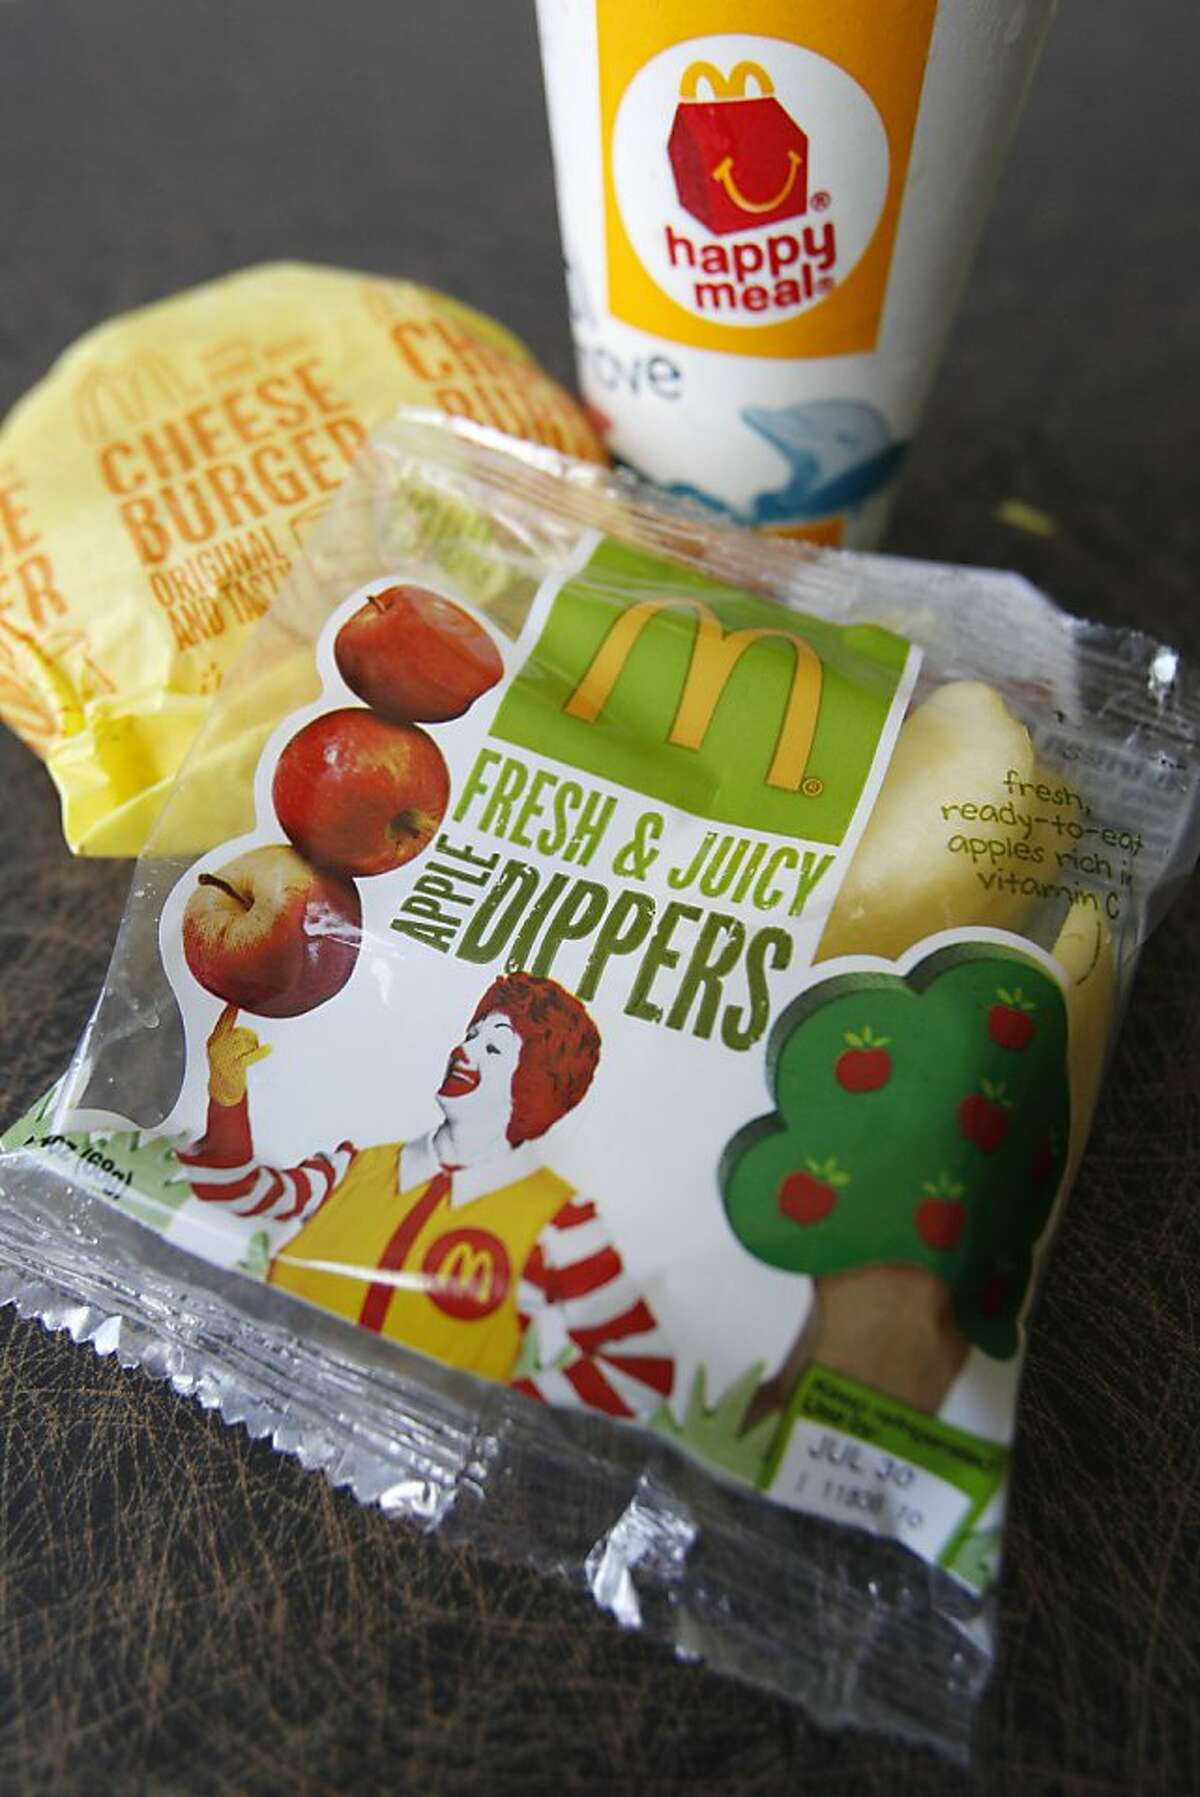 A McDonald's Cheeseburger Happy Meal with the new apple slices option is shown on Tuesday, July 26, 2011, in Pittsburgh. McDonald's Corp. says it is adding apple slices to every Happy Meal, part of the chain's larger push to paint itself as a healthy place to eat.